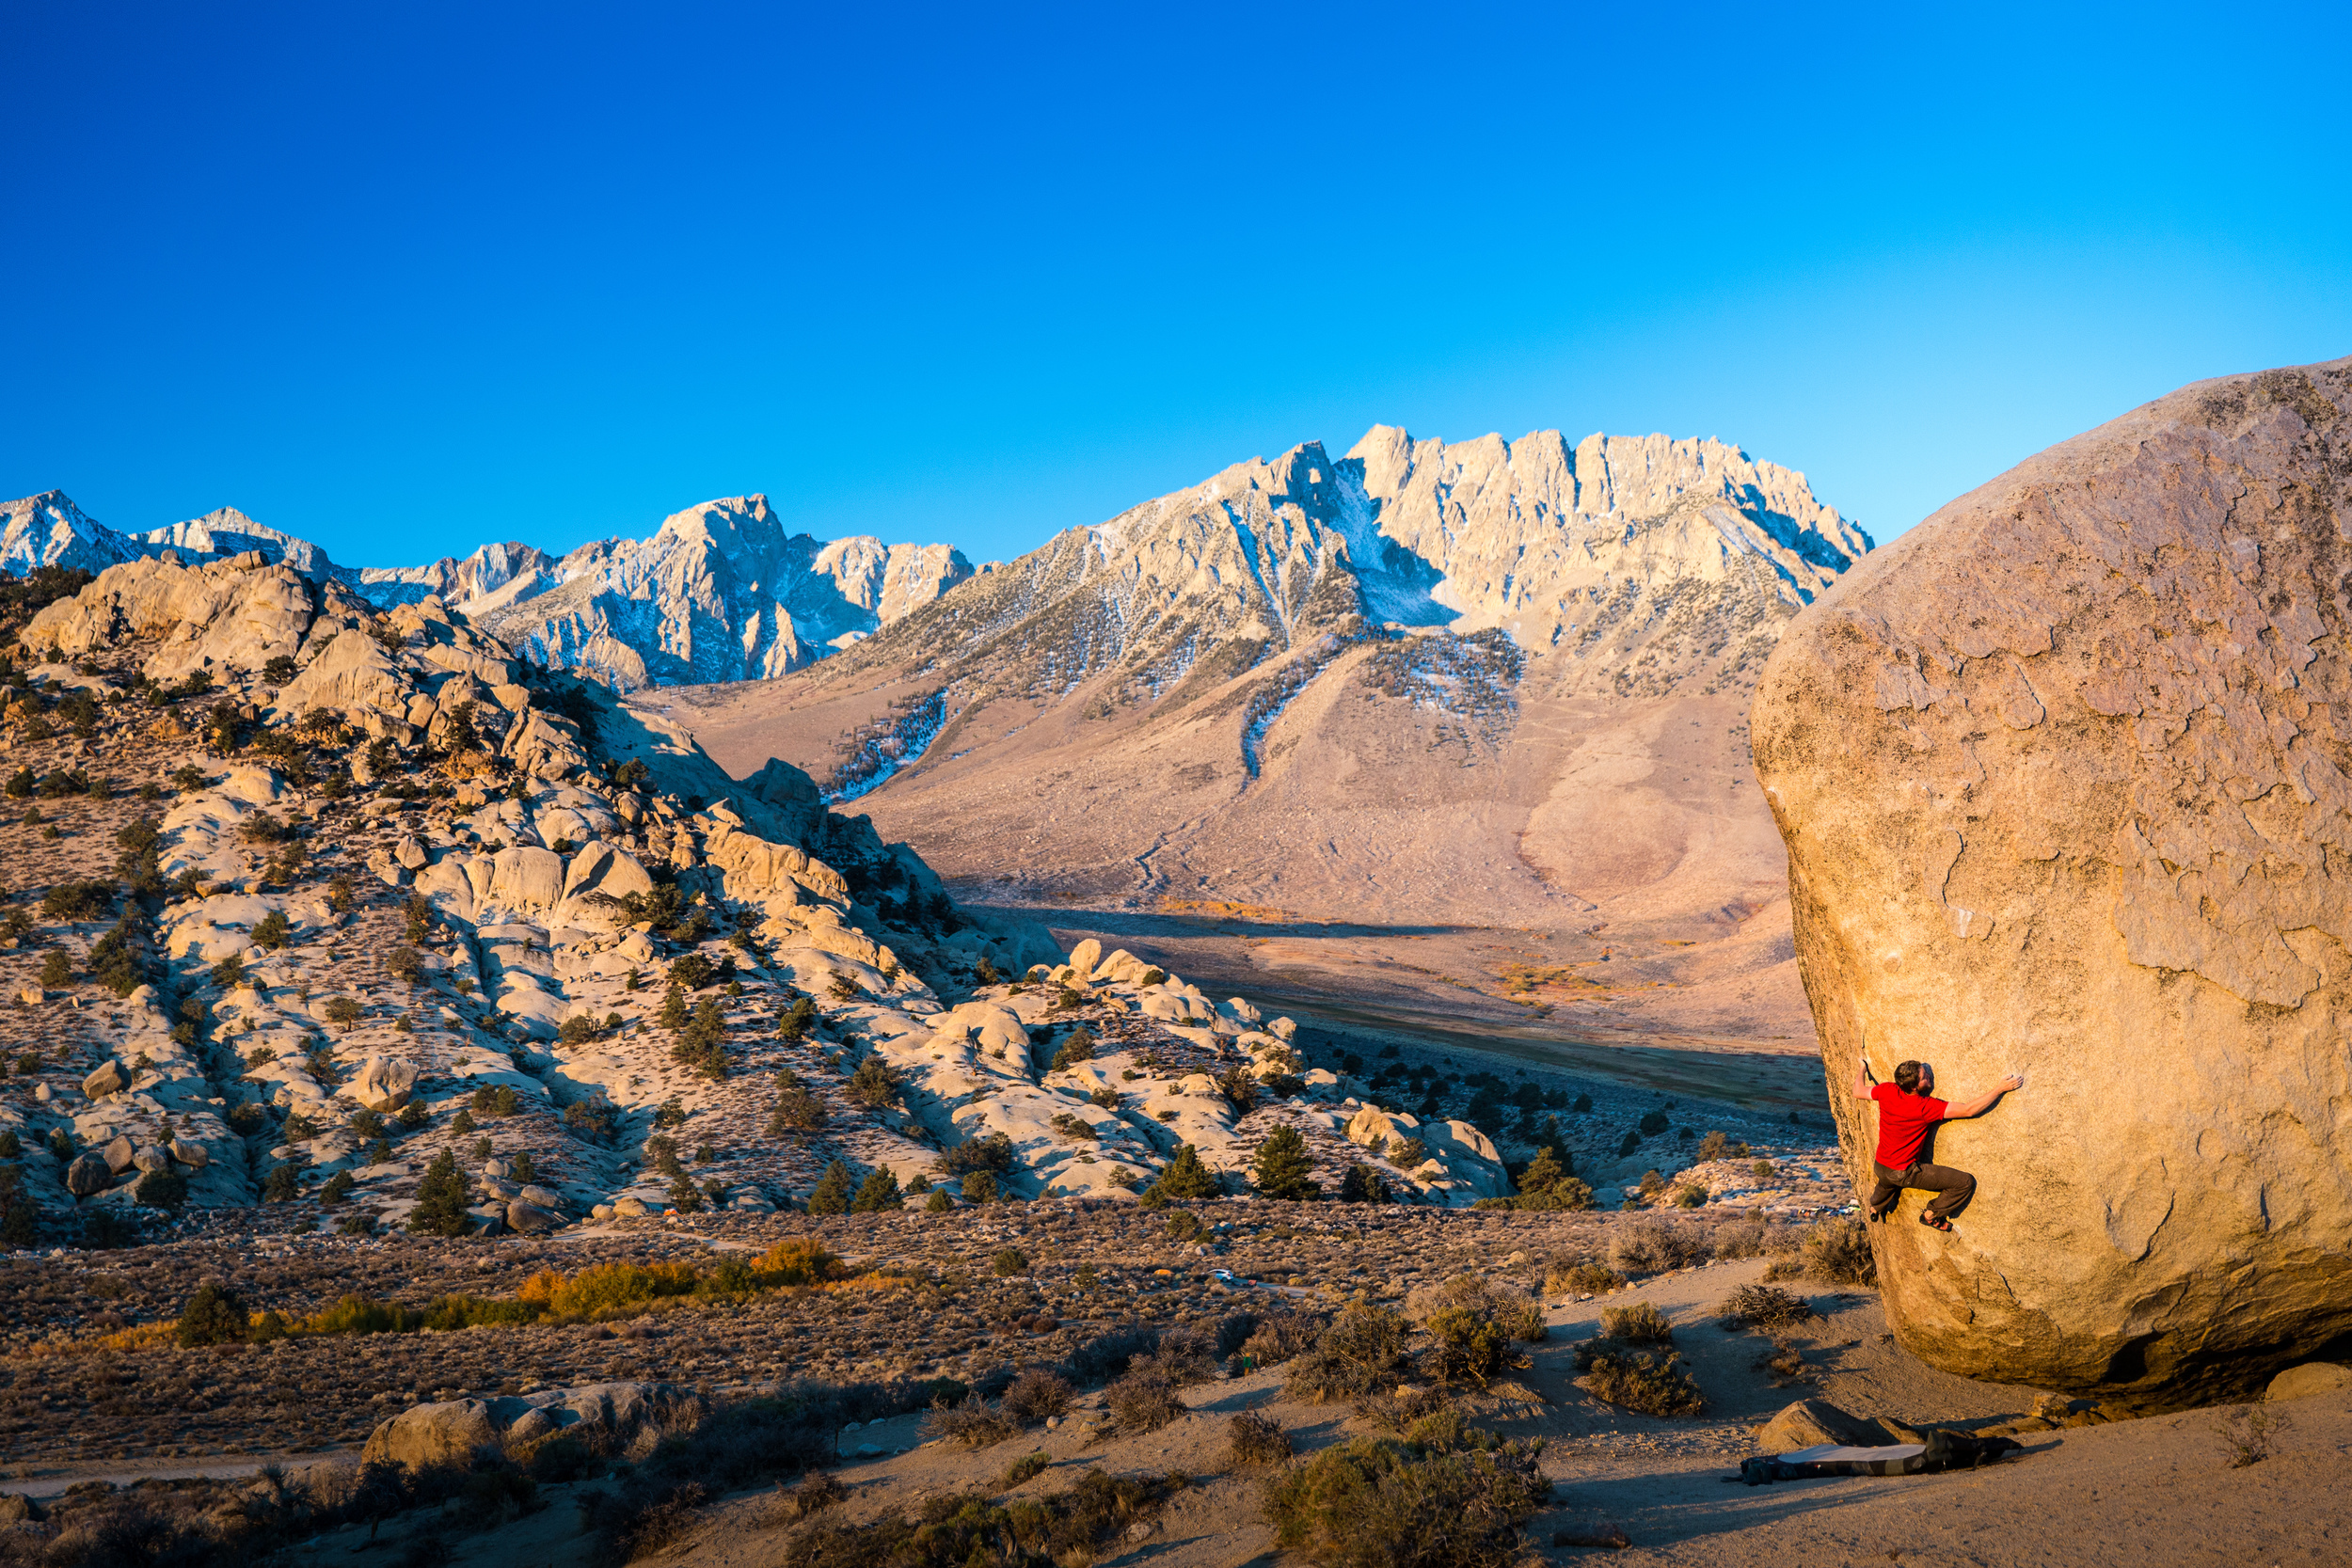 Matthew Wade on Saigon (V6) before the Californian sun and temperature gets too high, Buttermilks, Bishop